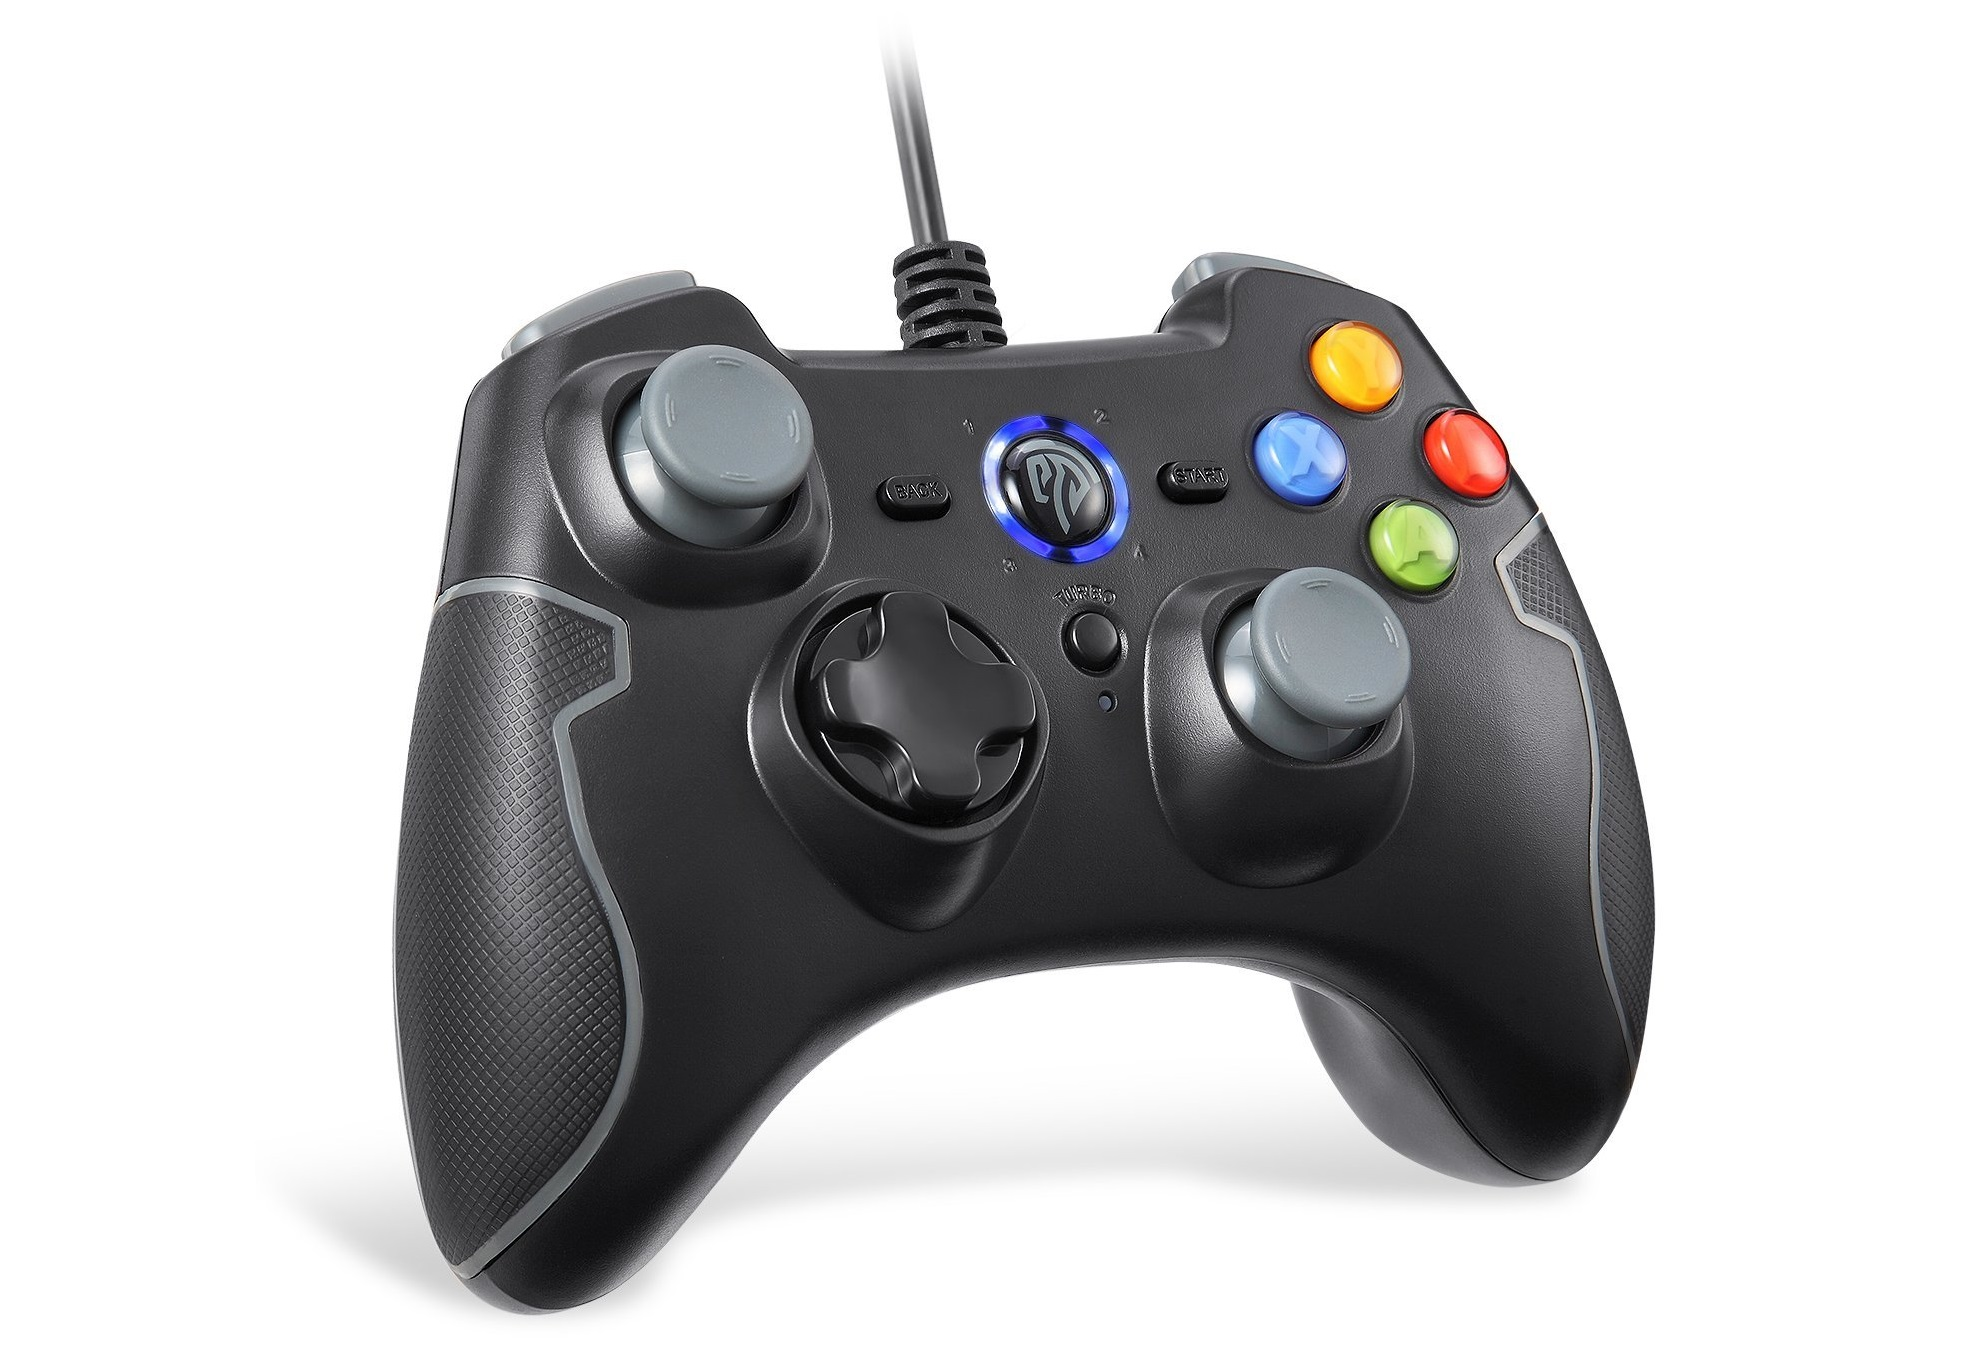 Top 10 Best PC Gaming Controllers in 2019